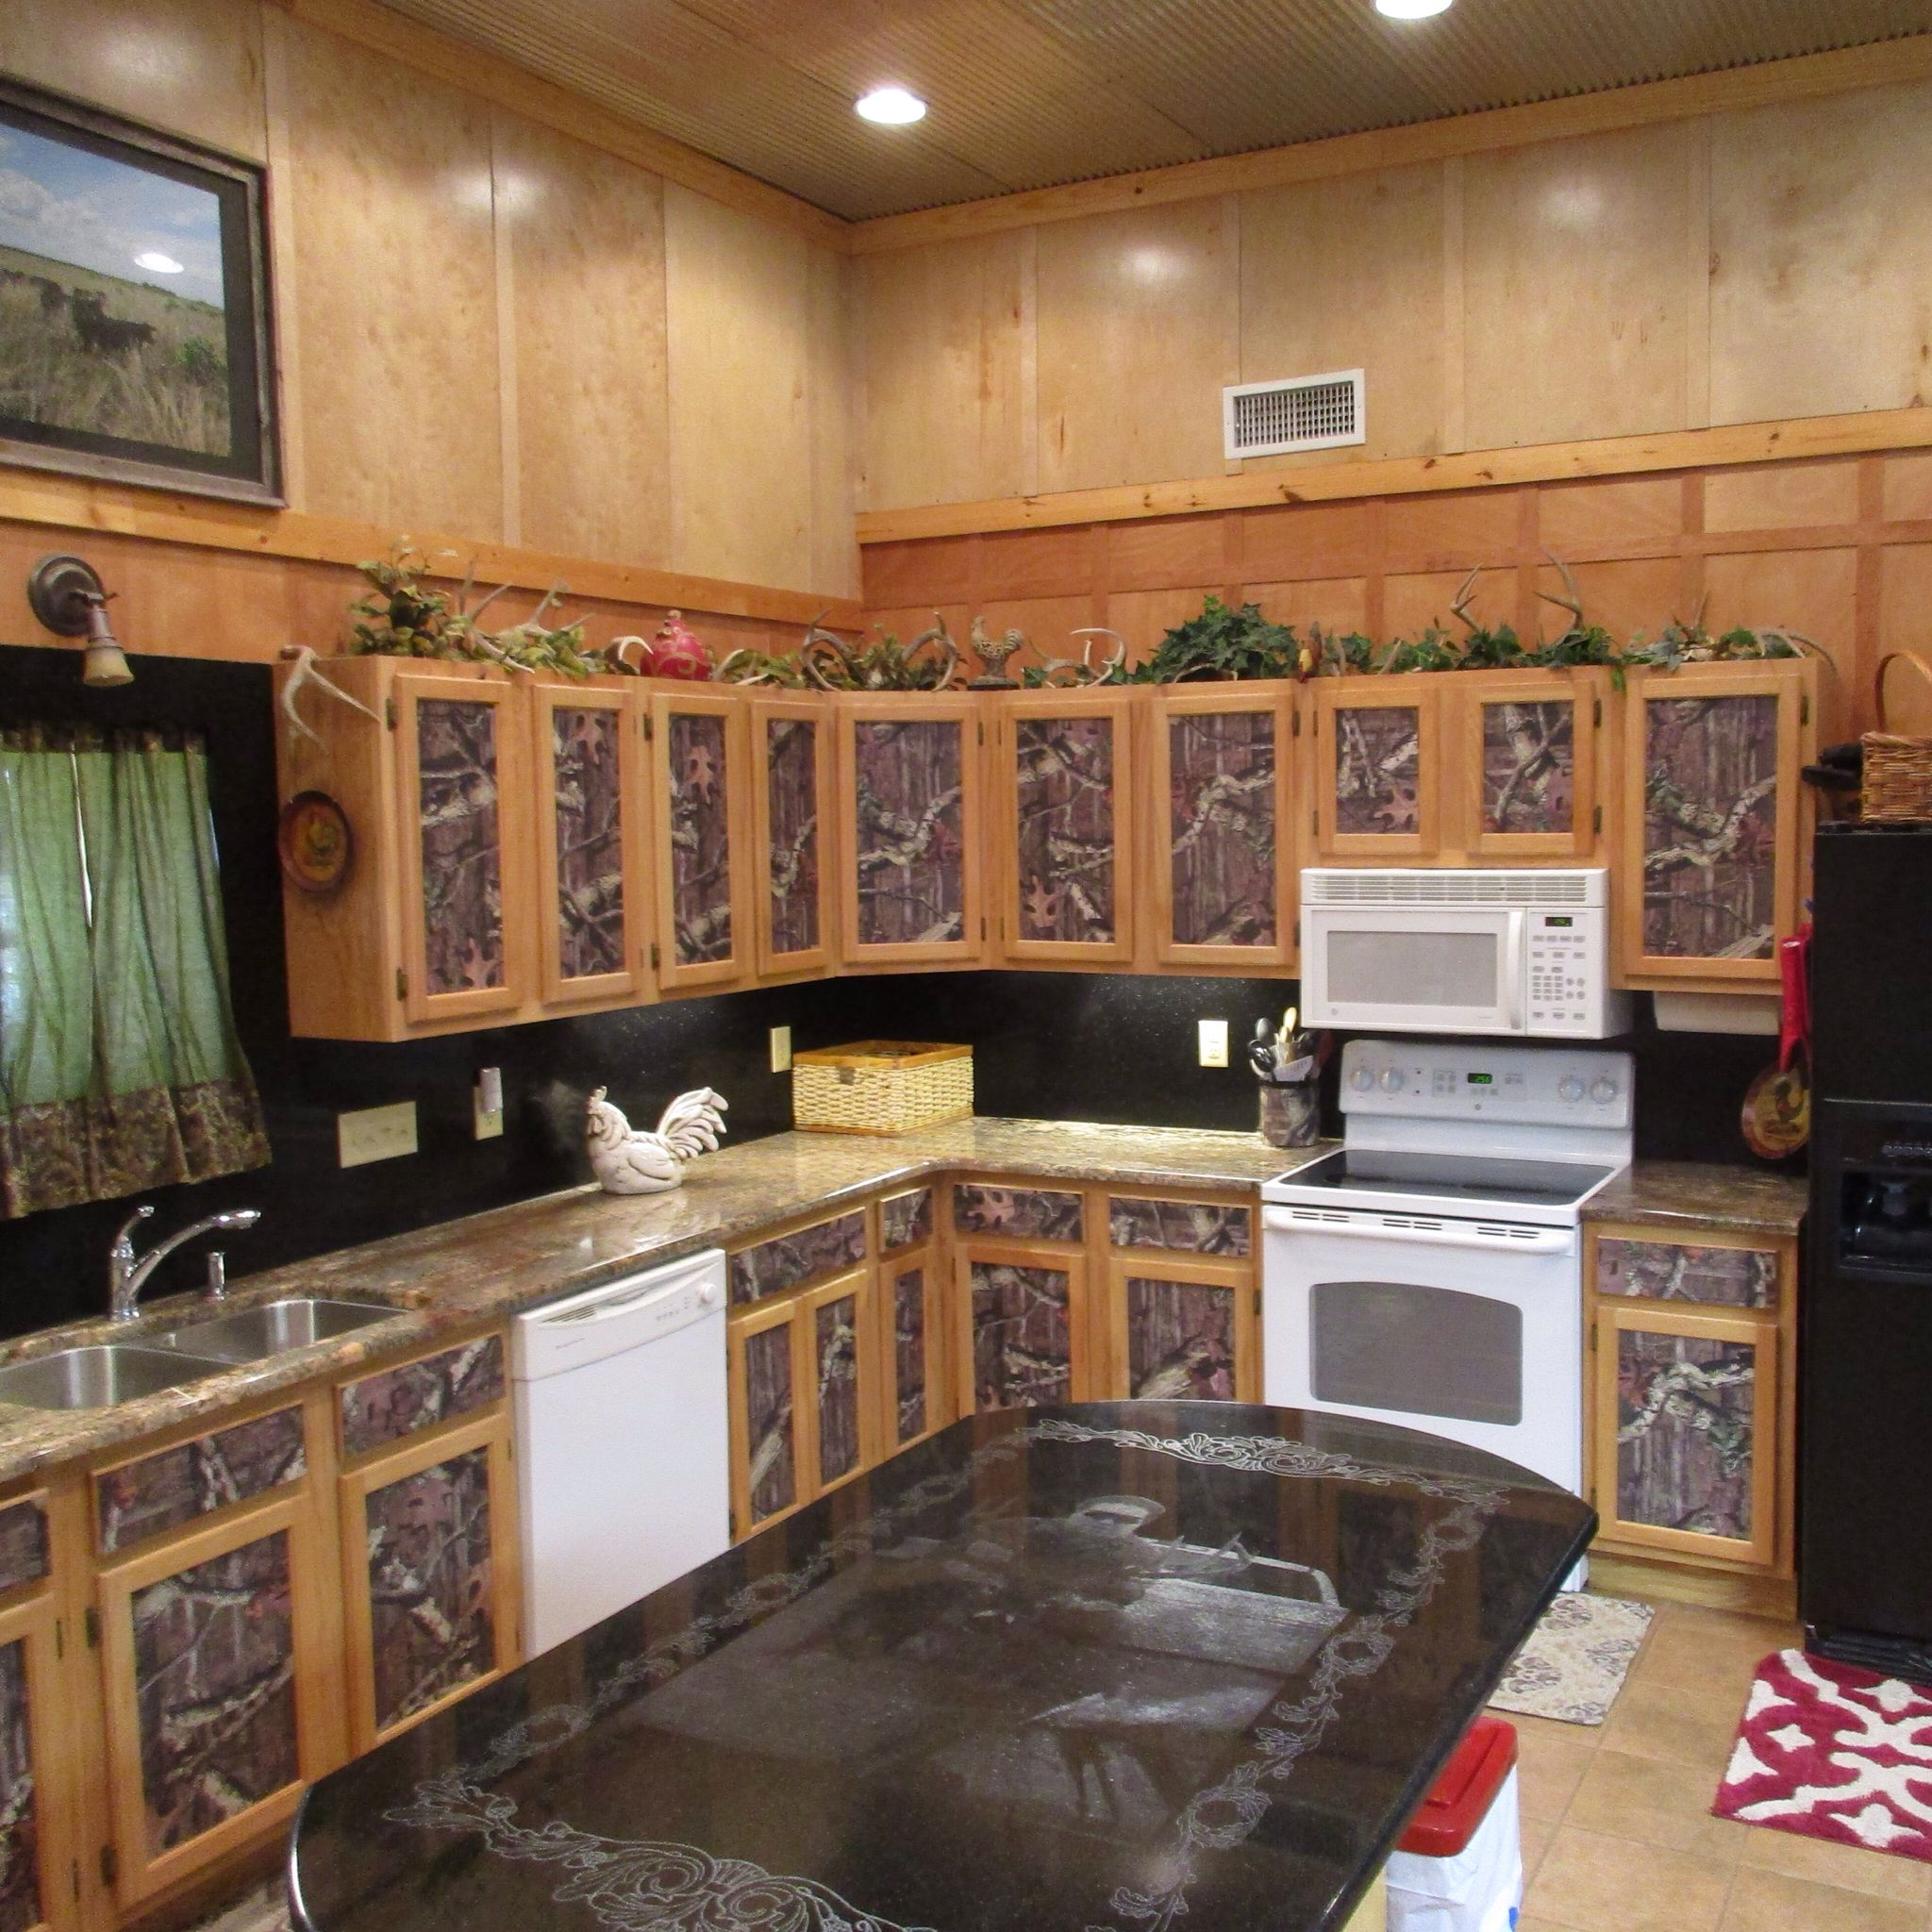 My Realtree Camo Kitchen Camo Living Rooms Kitchen Decor Kitchen Transformation